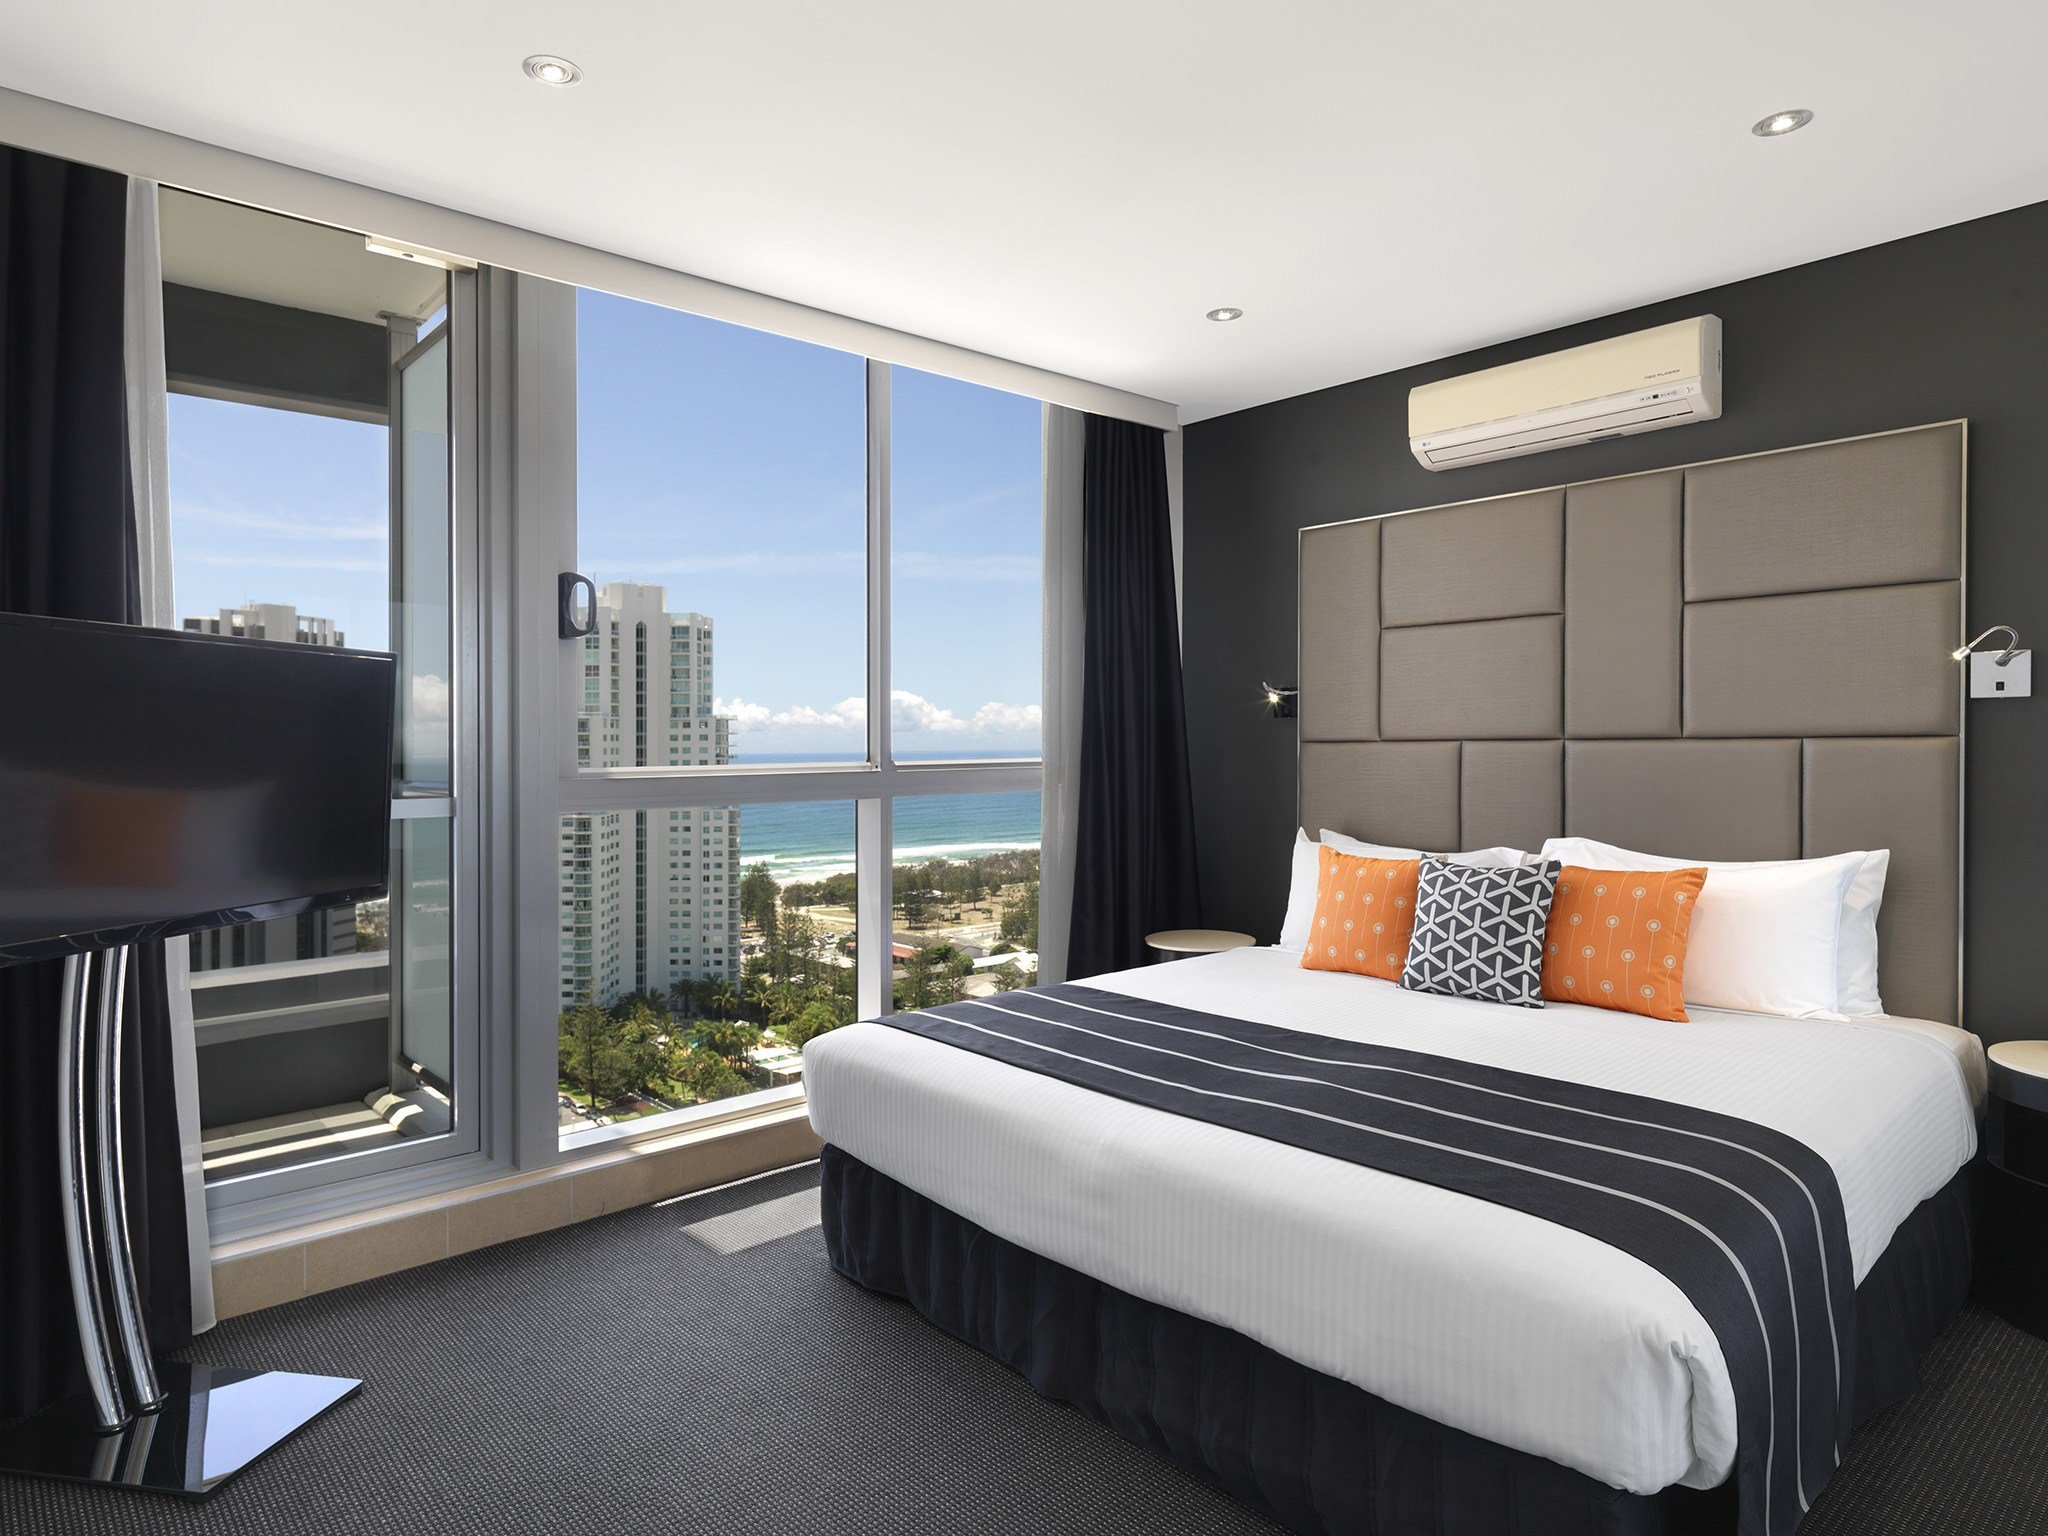 Best 2 Bedroom Apartments Gold Coast For Sale With ...